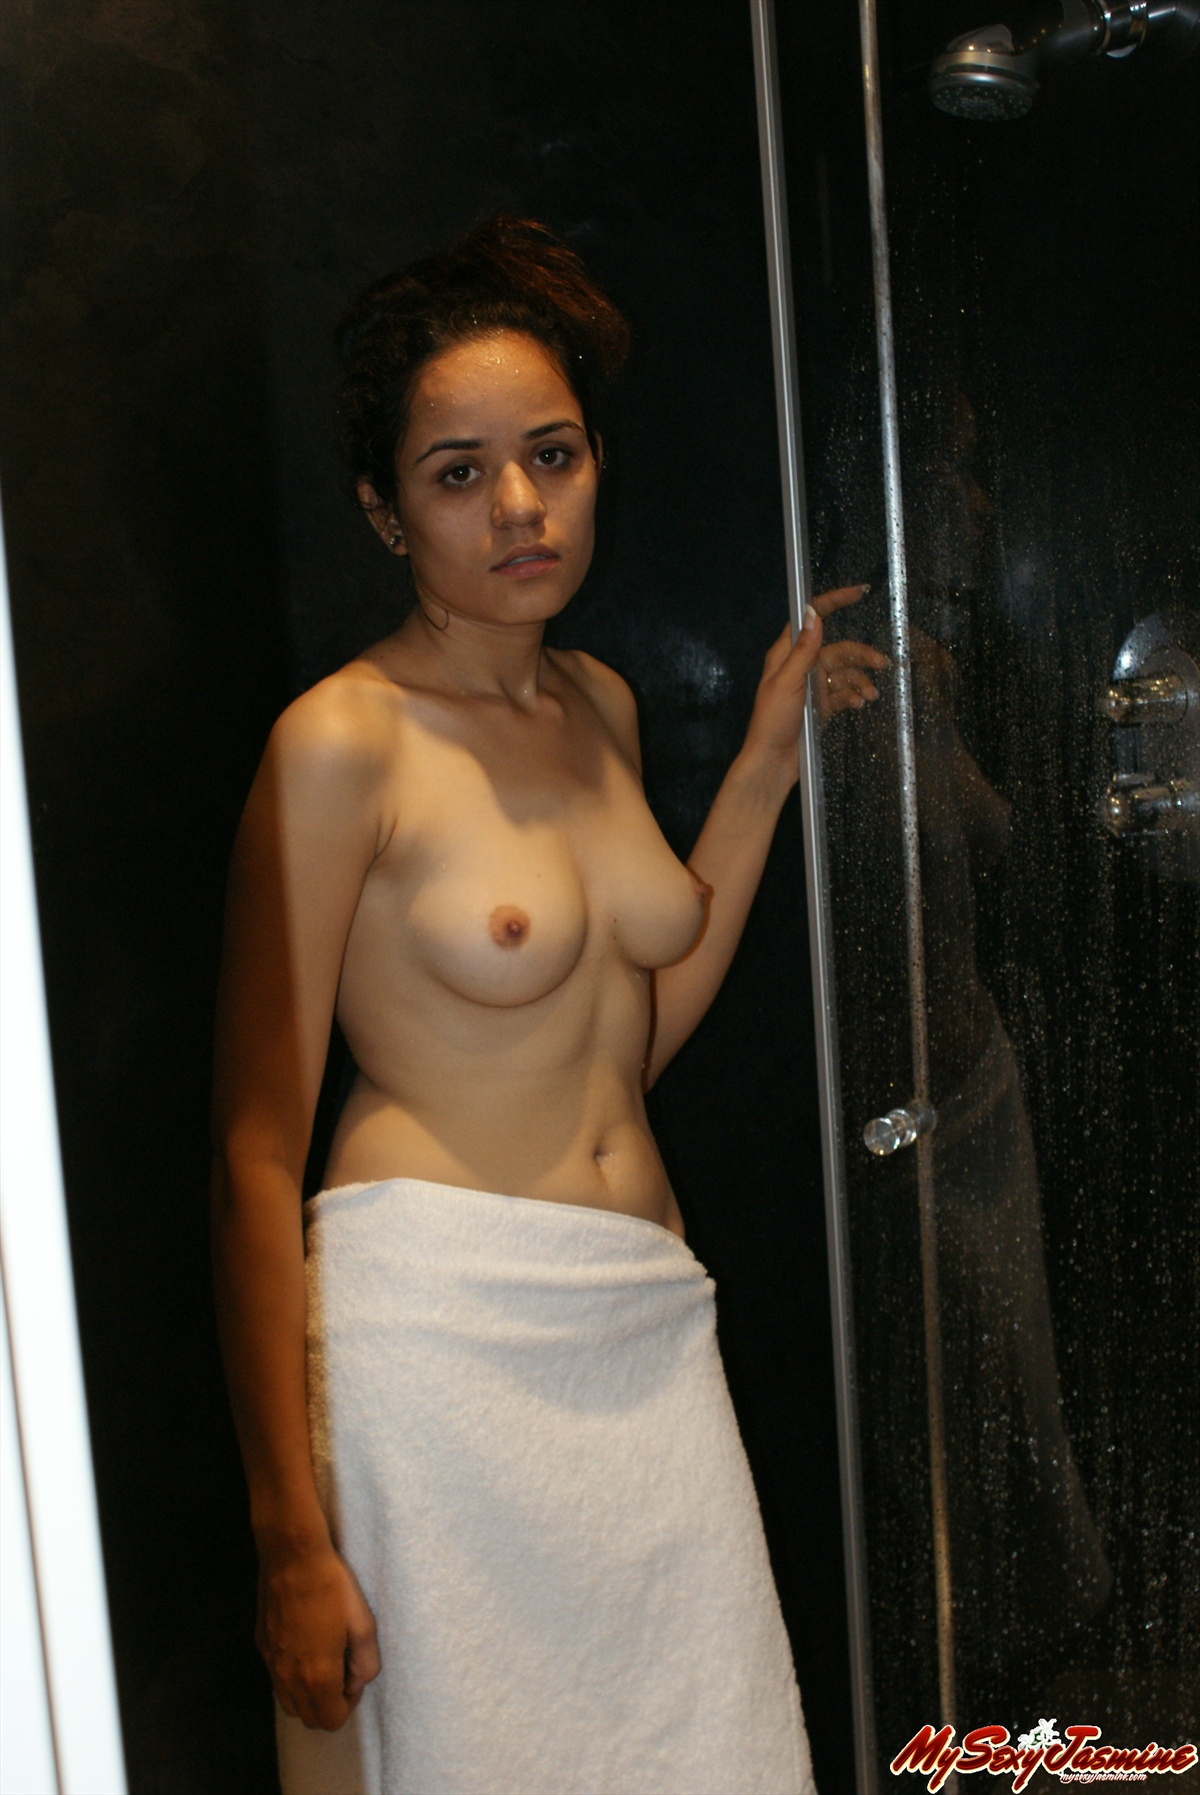 Pic gal 0016. Jasmine mathur taking shower in bath tub